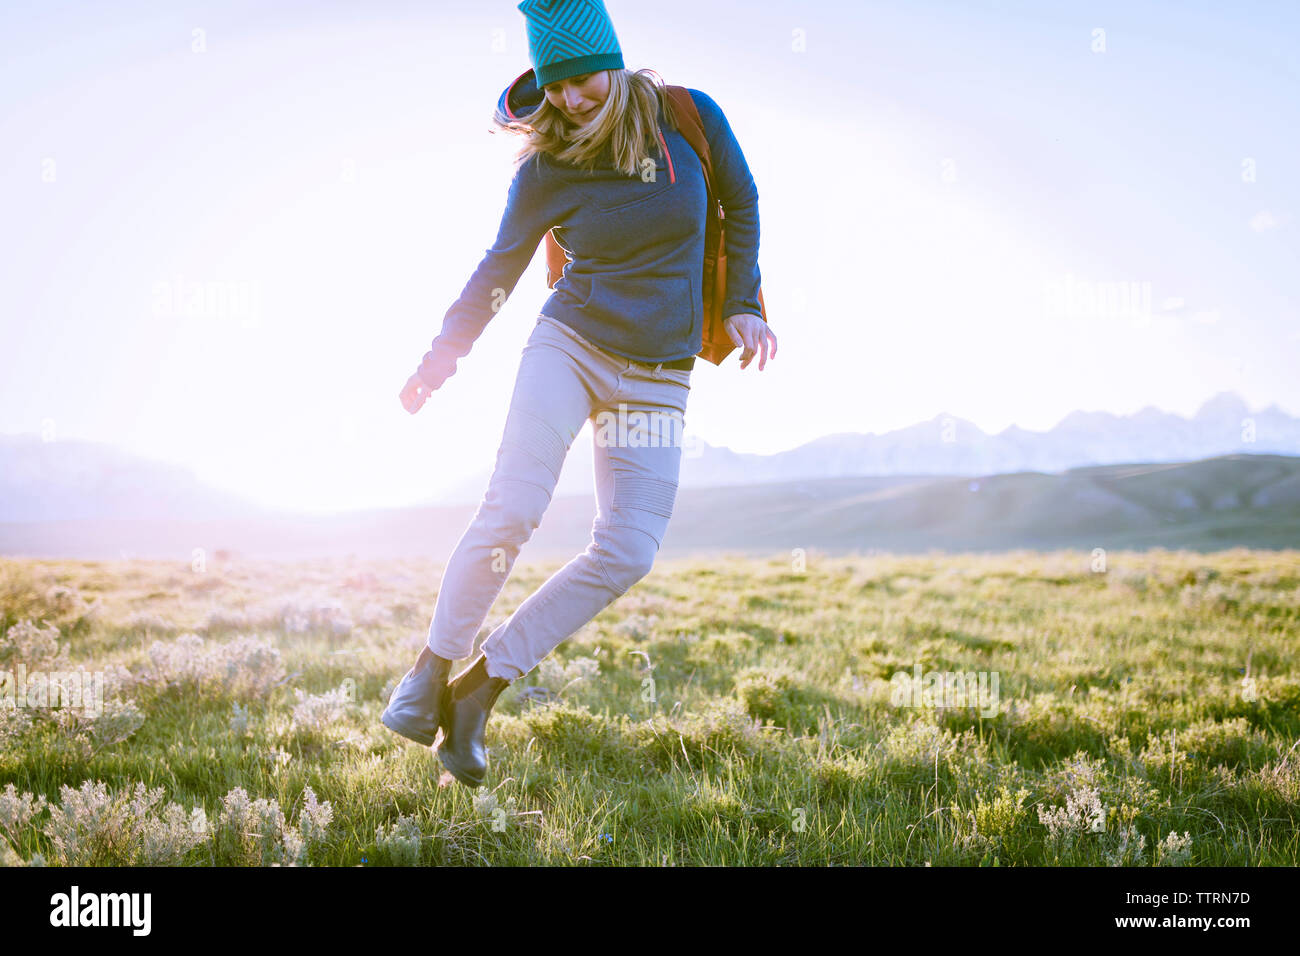 Female hiker jumping on grassy field against sky - Stock Image